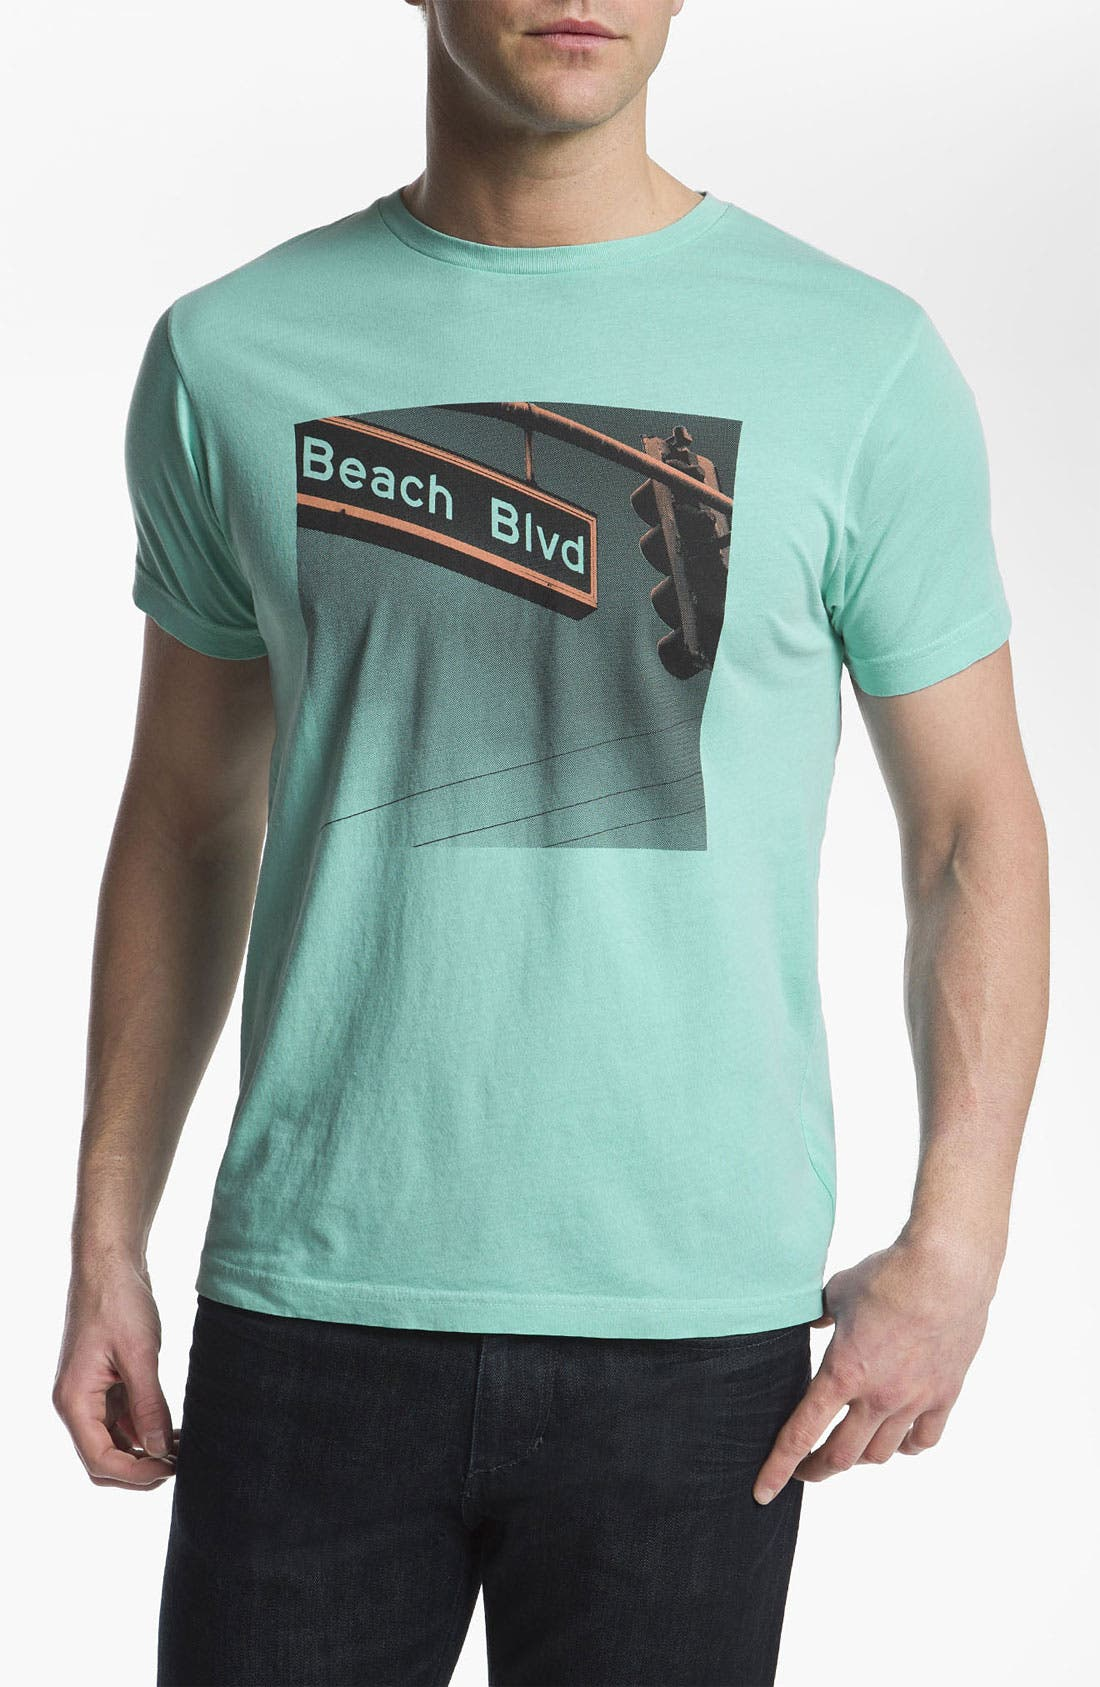 Alternate Image 1 Selected - Warriors of Radness 'Beach Blvd' T-Shirt